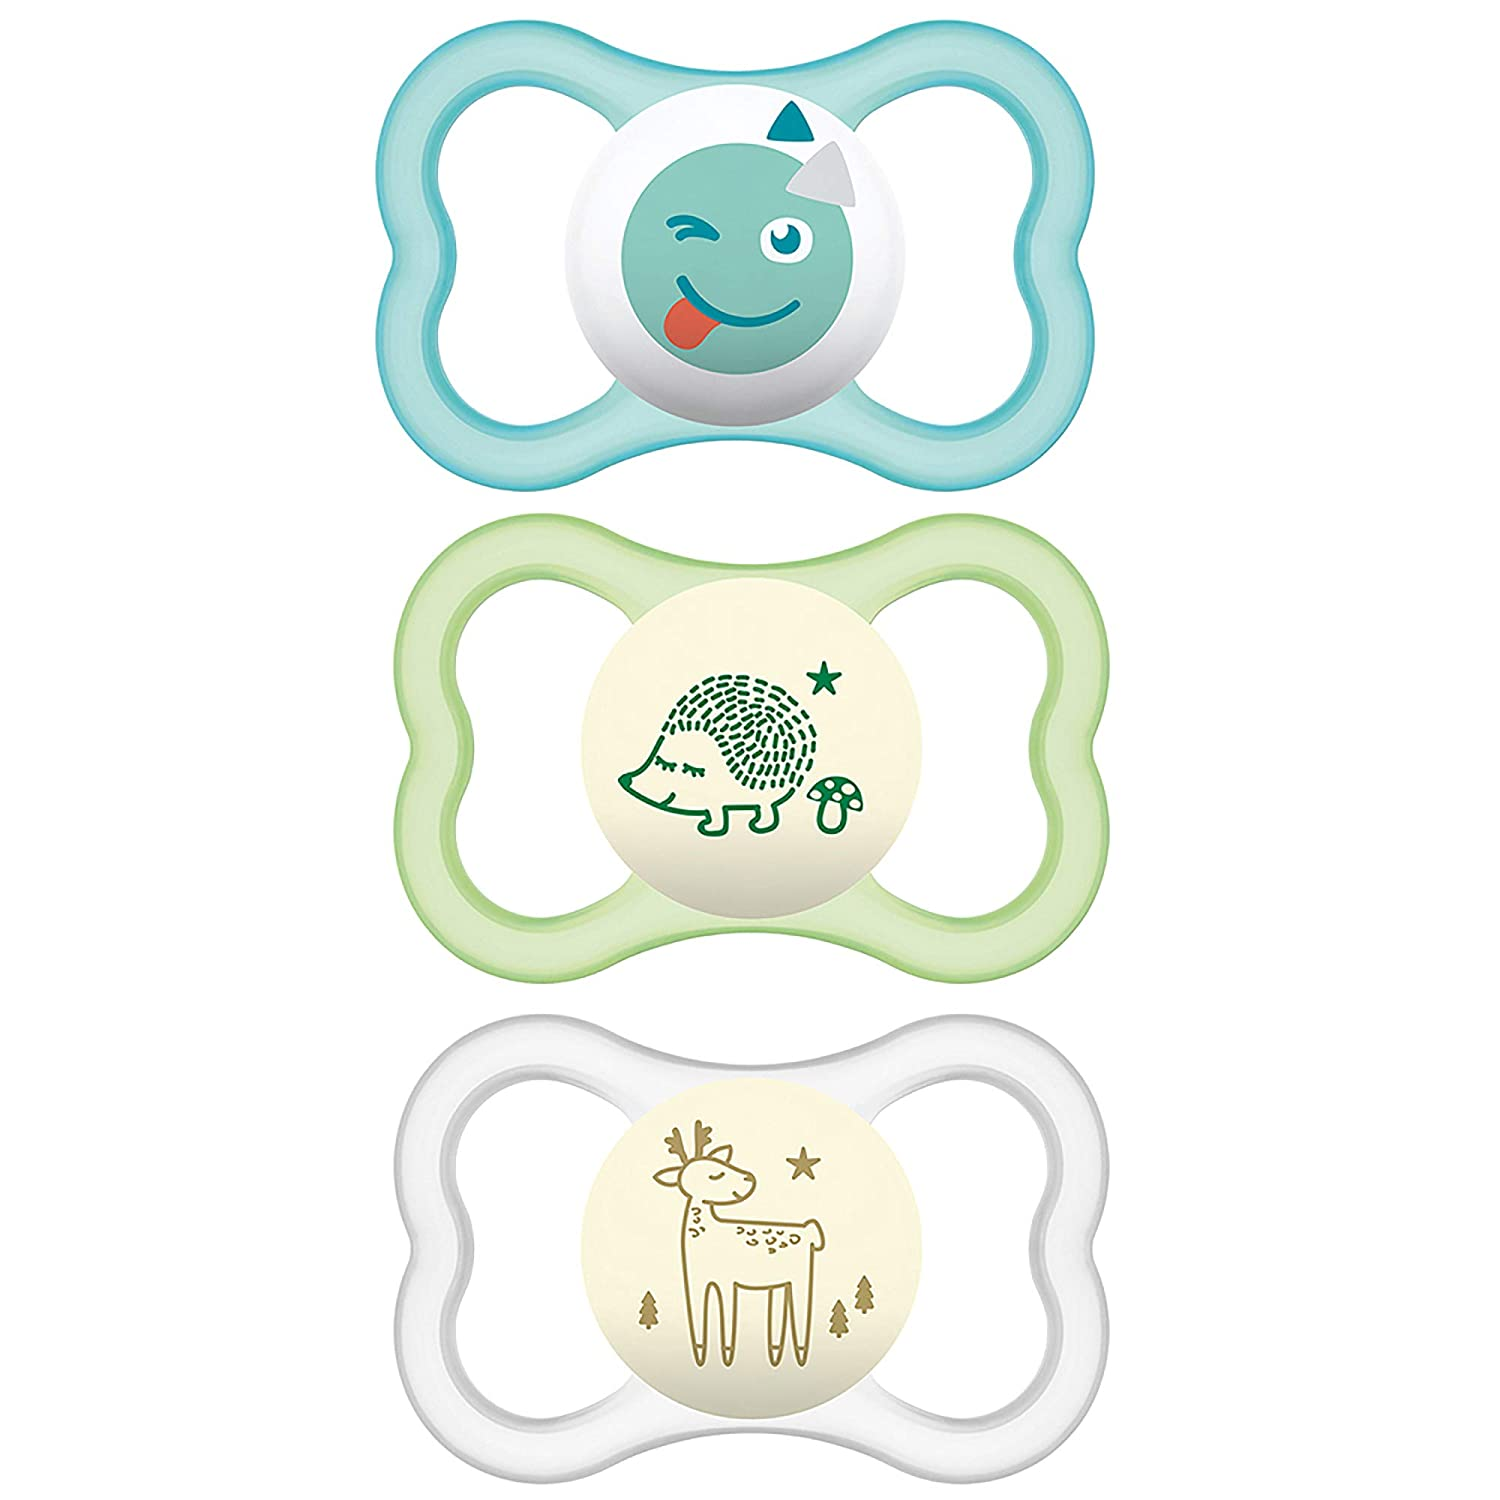 MAM Sensitive Skin Pacifiers, Baby Pacifier 6+ Months, Best Pacifier for Breastfed Babies, Air Night & Day' Design Collection, Unisex, 3Count, Multi